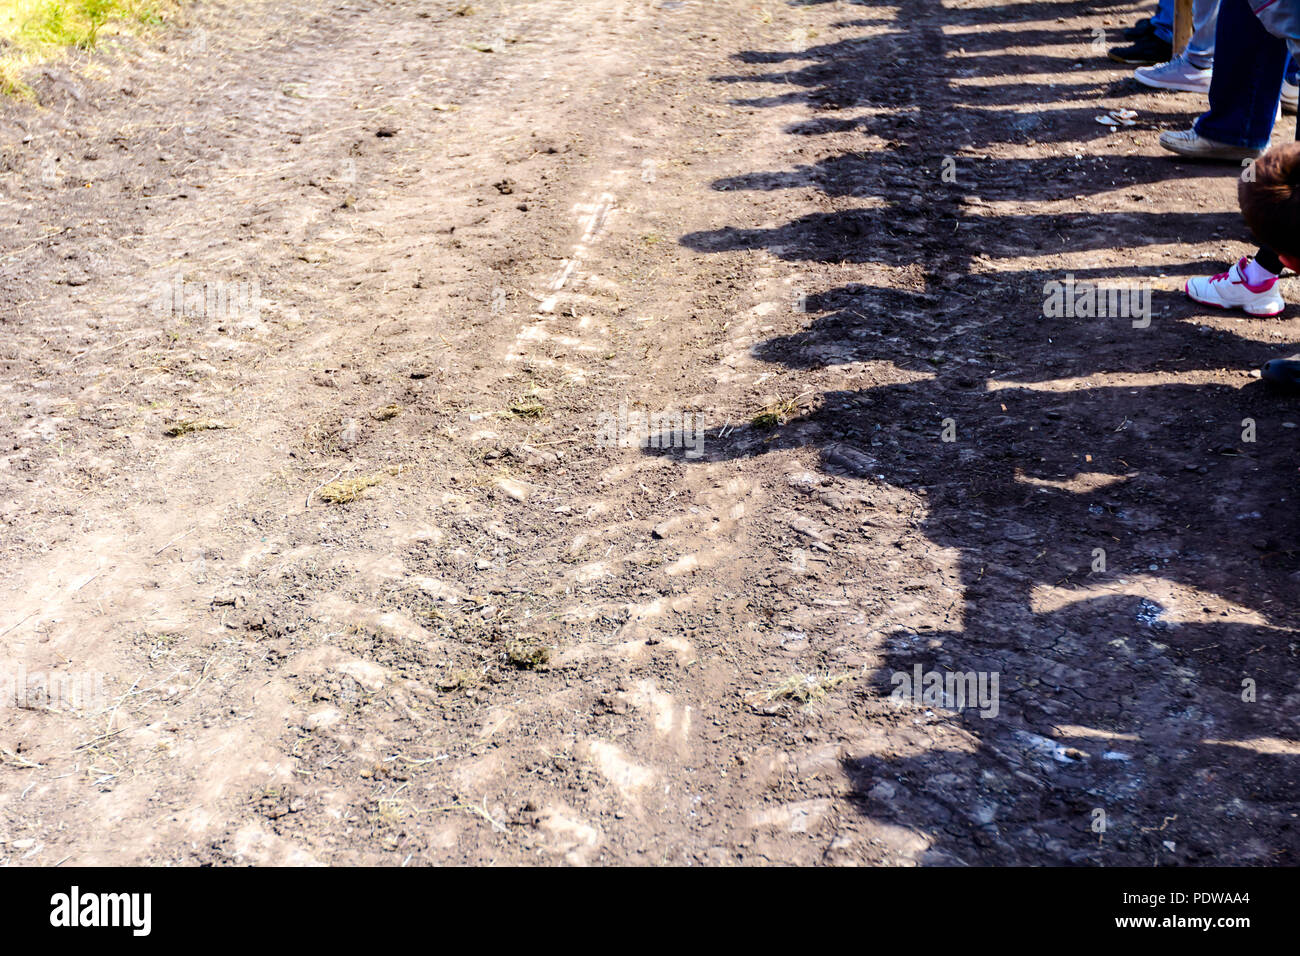 Shadows of audience on dry and dusty race track, bleachers are at open air arena. - Stock Image